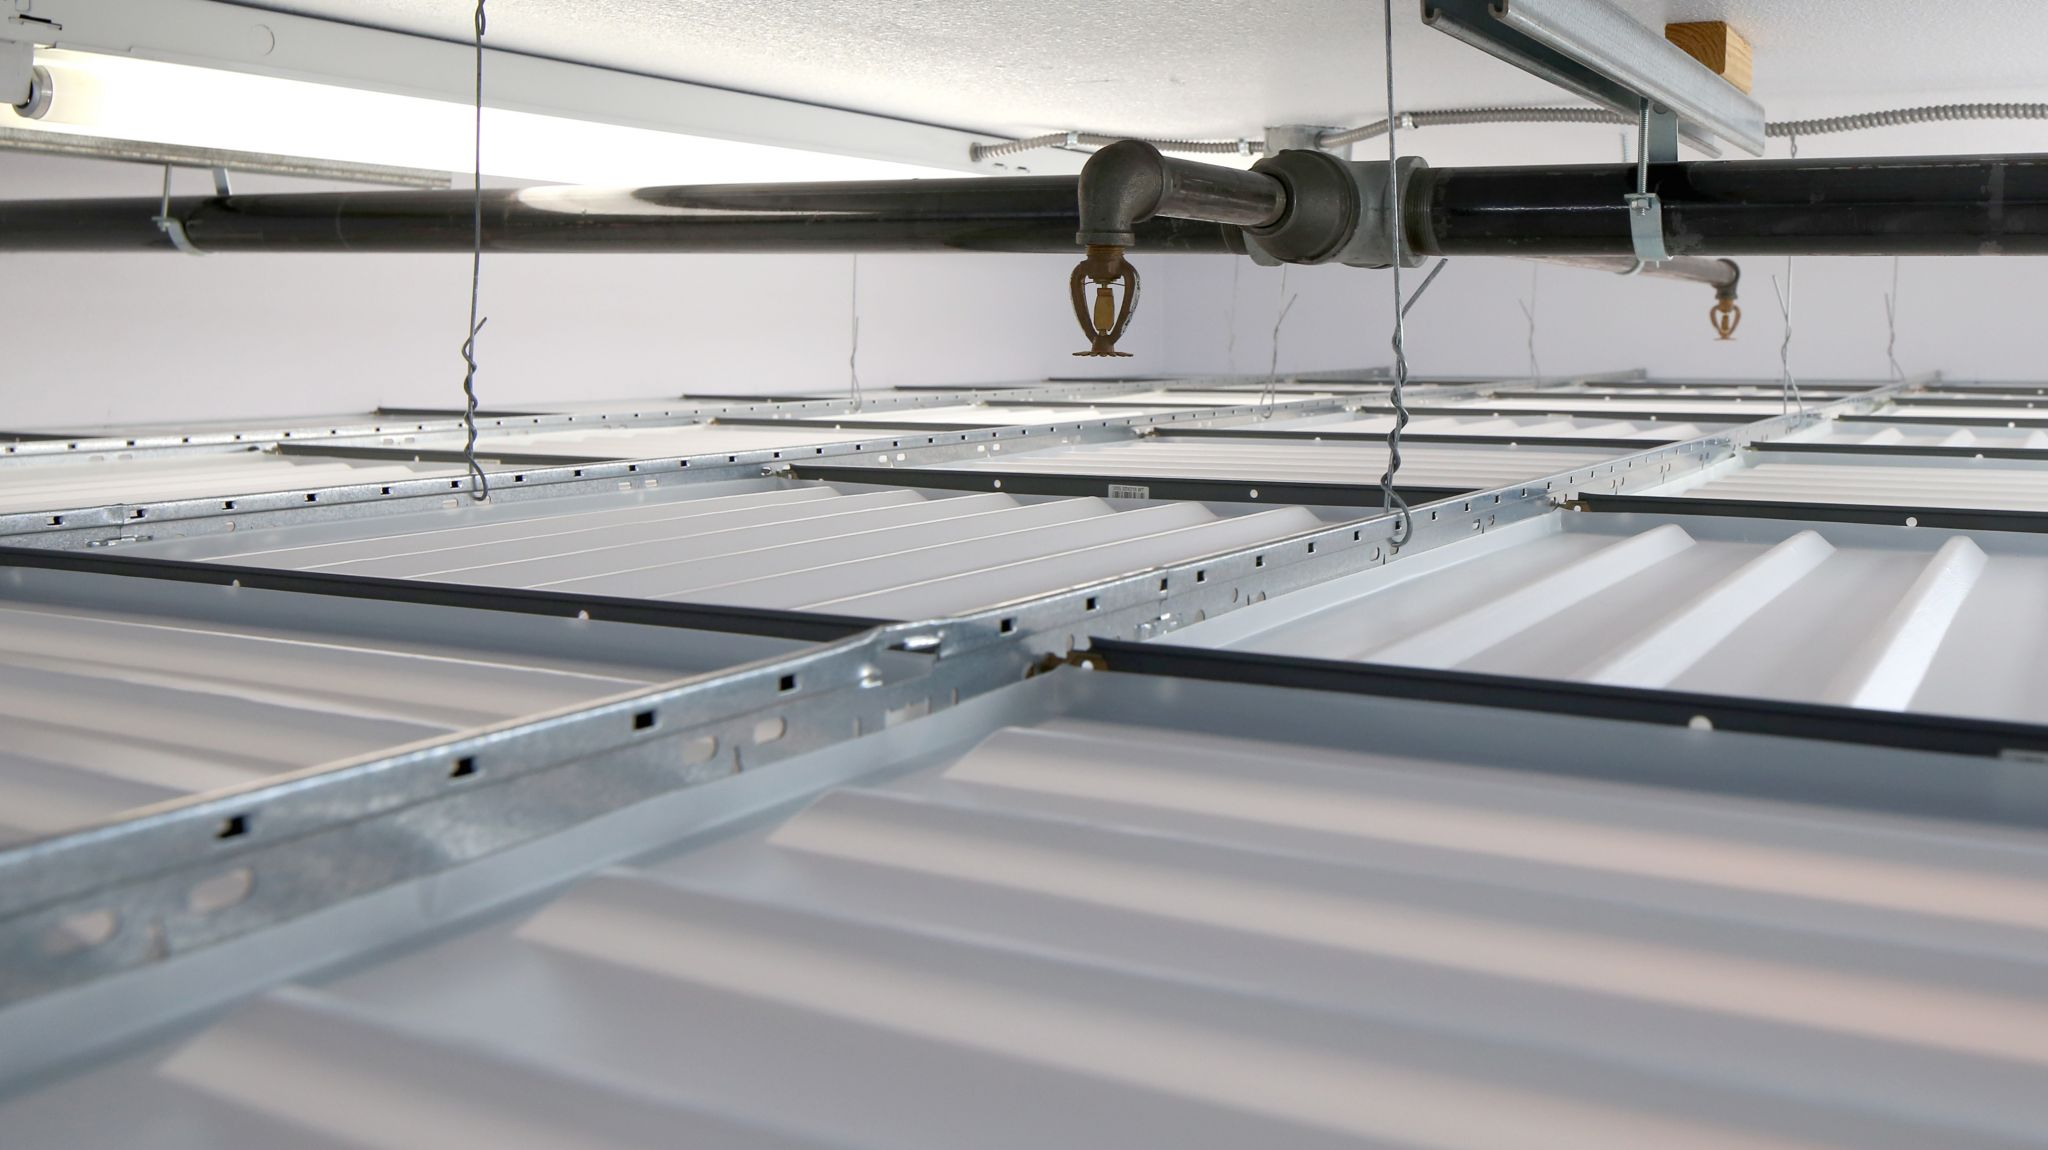 Drop out ceiling panels installed beneath fire sprinklers